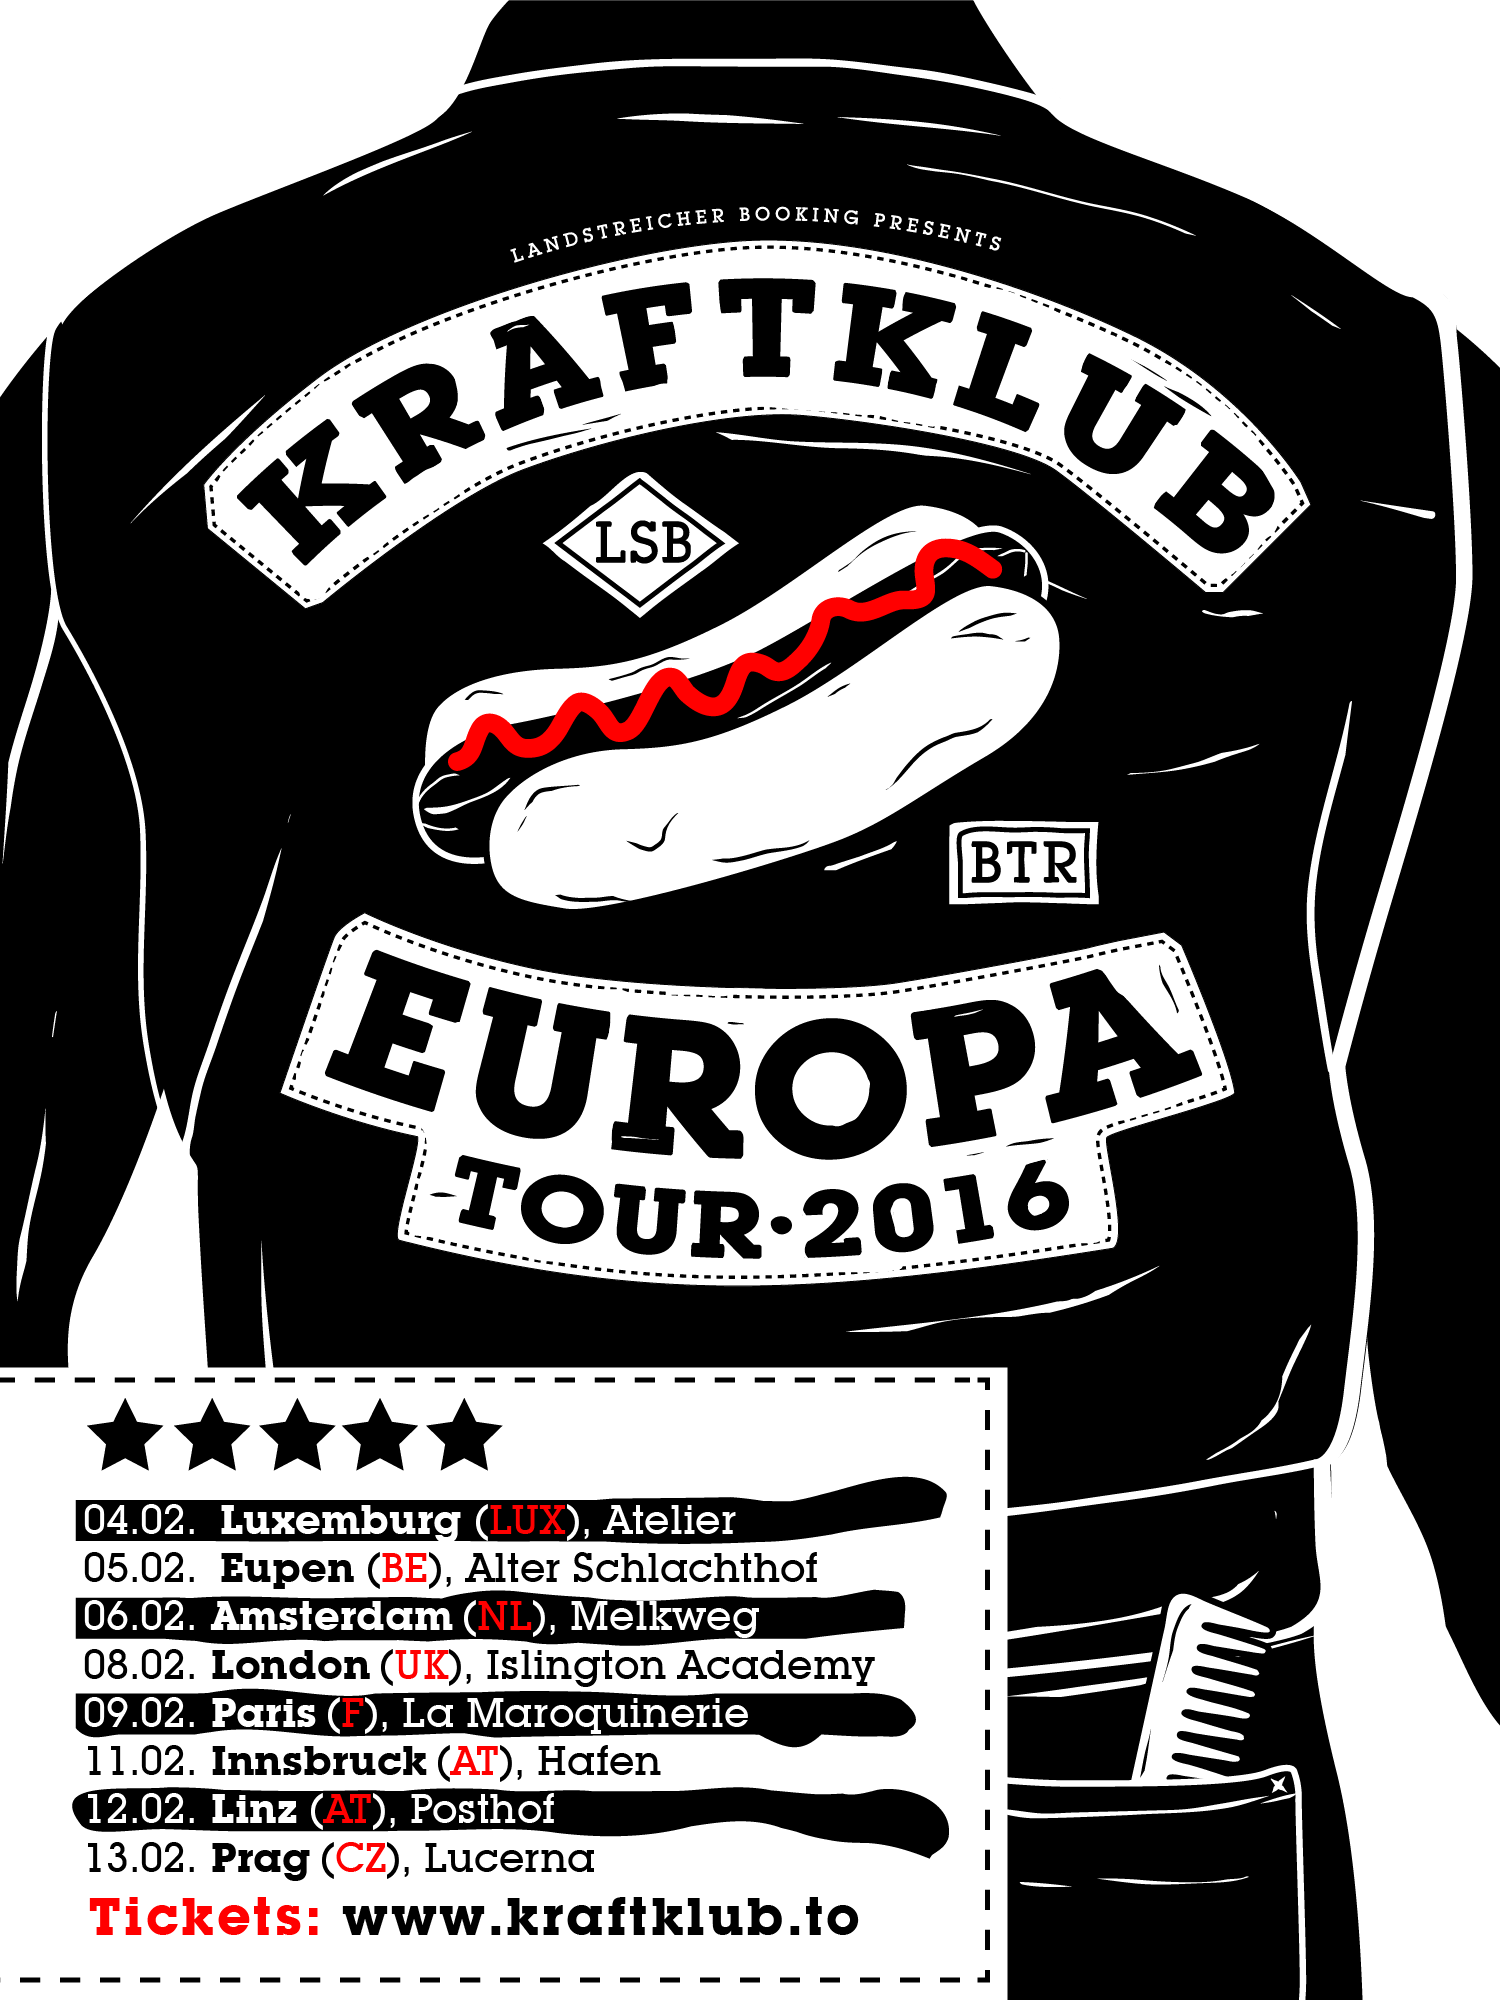 Kraftklub Tour 2016 Dates